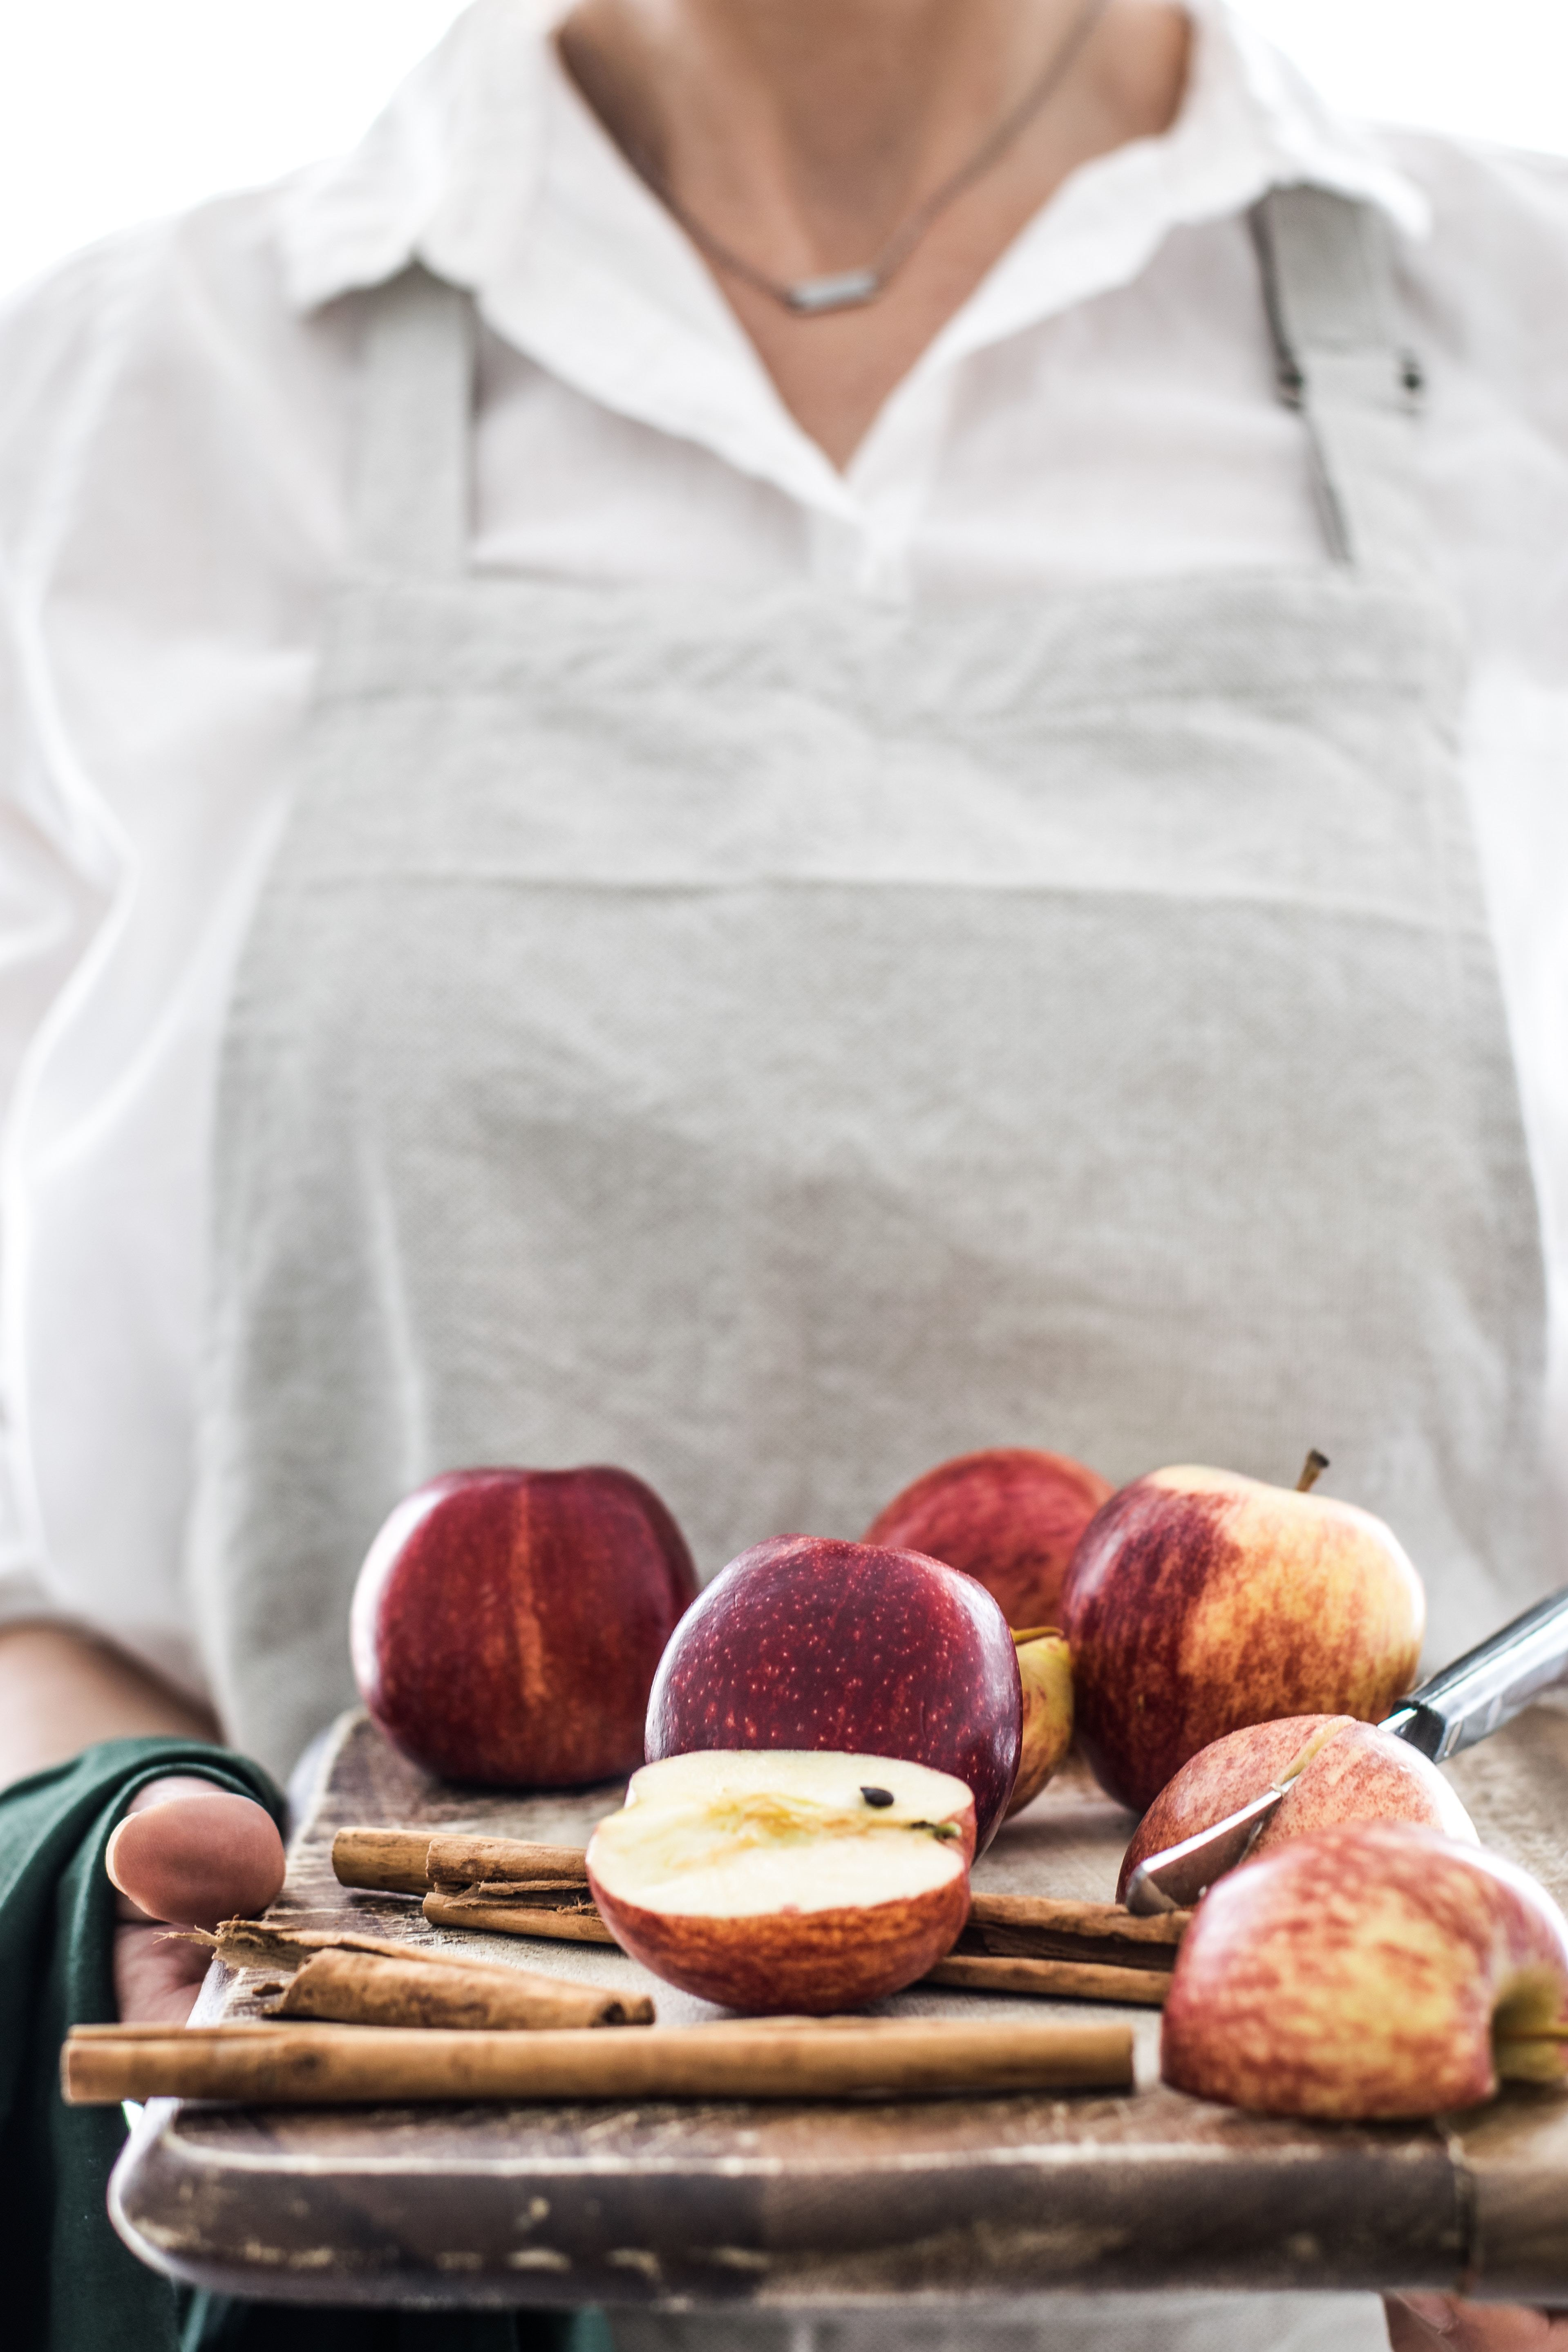 woman holding a board containing apples, some chopped in half